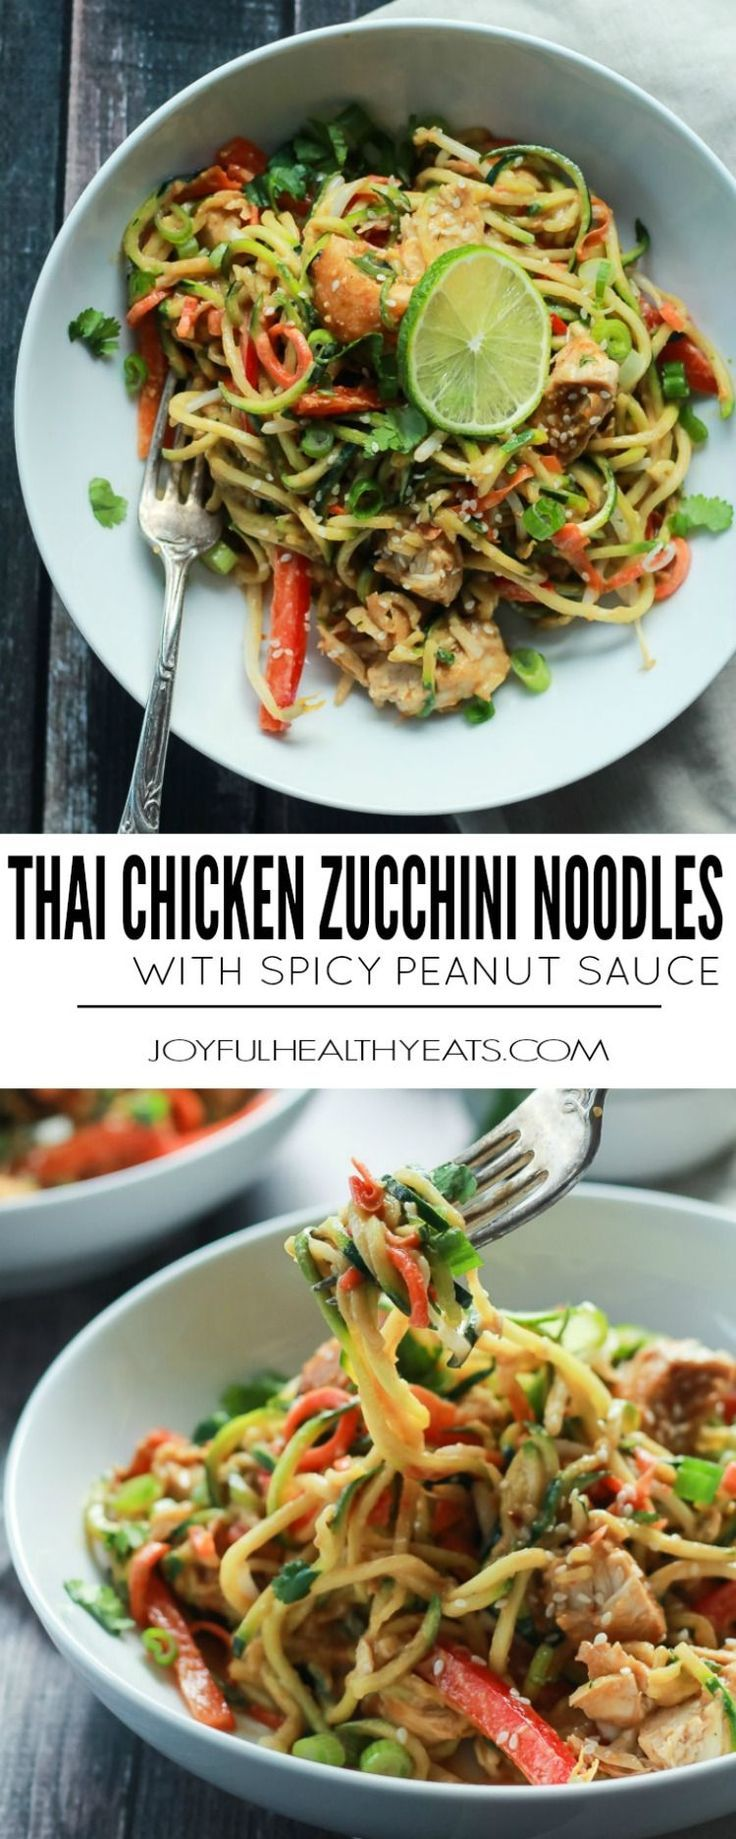 Zoodles are the star in this easy 15 minute Thai Chicken Zucchini Noodles recipe with Spicy Peanut Sauce only 363 calories and packed with a punch of flavor! | joyfulhealthyeats.com #paleo #glutenfree